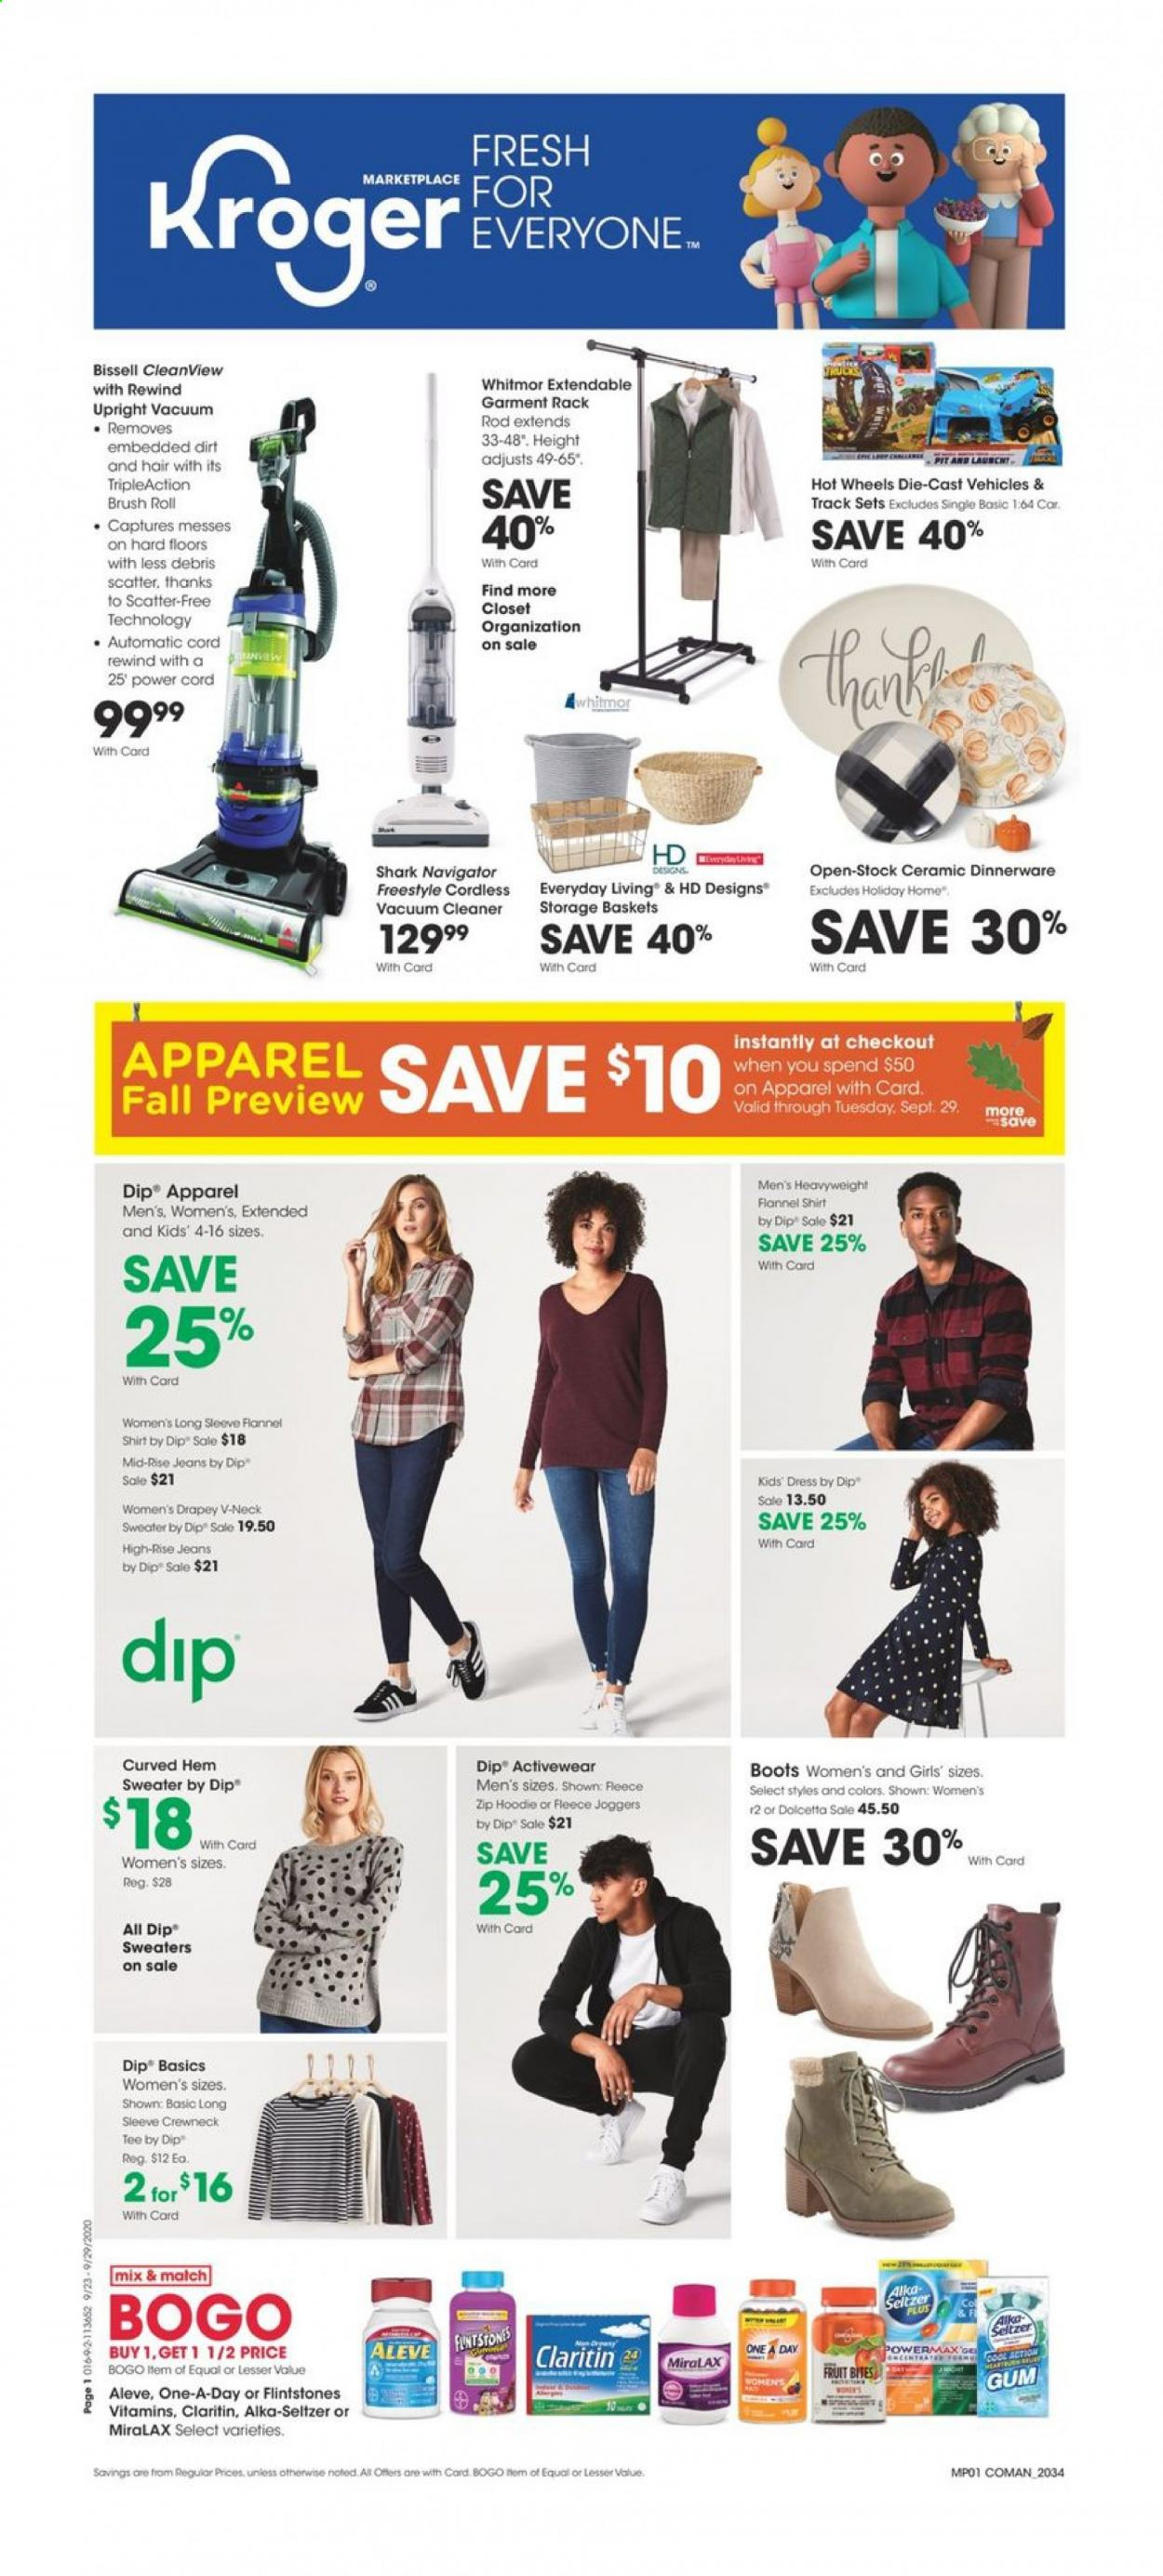 Kroger Flyer - 09.23.2020 - 09.29.2020 - Sales products - aleve, alkaseltzer, apparel, basket, bissell, boots, brush, dress, flannel, flannel shirt, miralax, rack, seltzer, shirt, sweater, tee, vacuum, vacuum cleaner, hoodie, jeans, hot wheels, rod, gum, car, bites, dinnerware, fruit, cleaner, scatter, cool. Page 1.